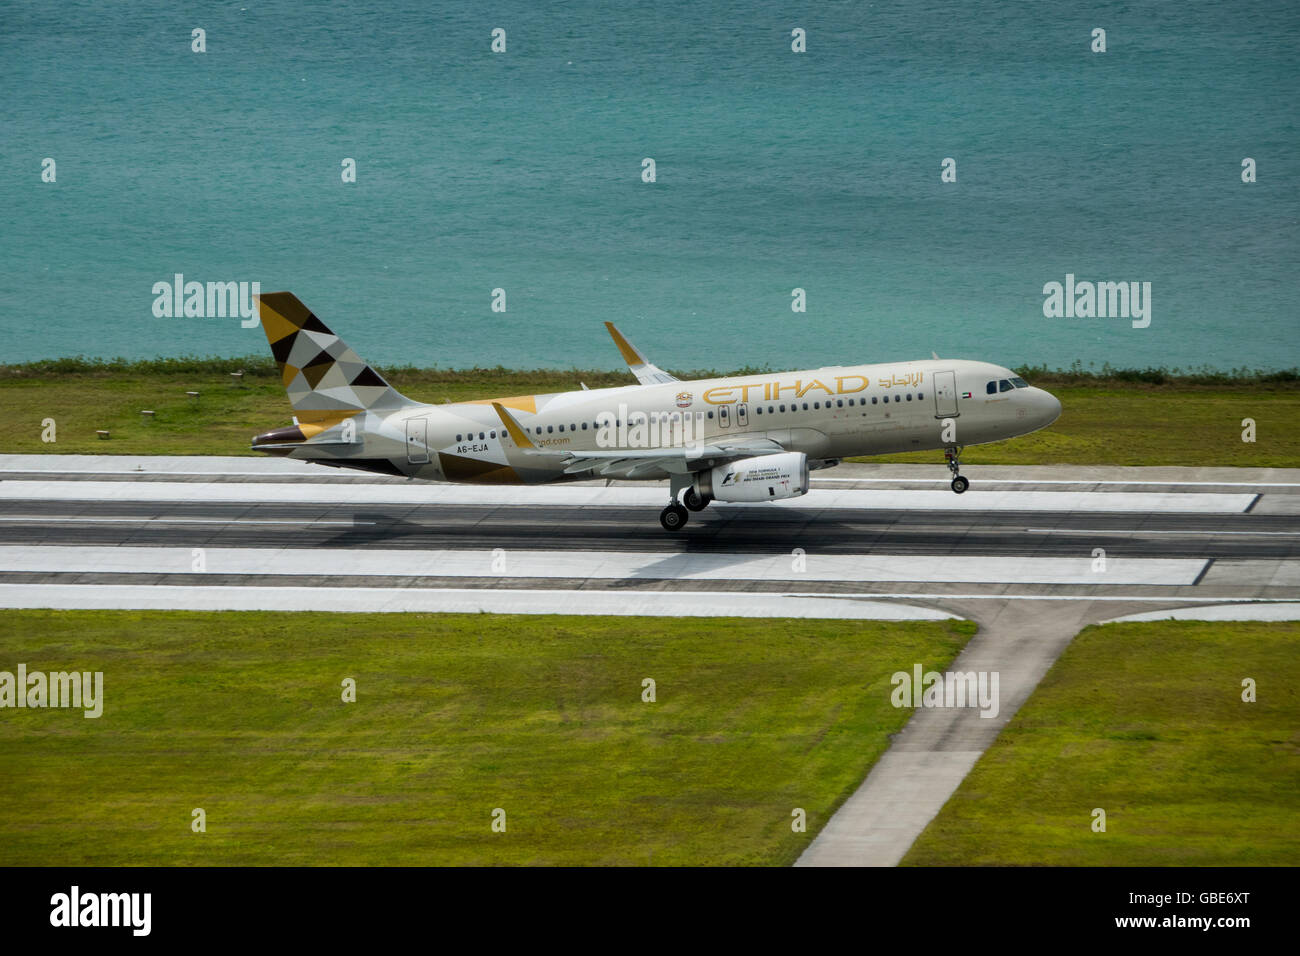 An Etihad Airbus A320 touches down on Mahe Island in the Seychelles - Stock Image